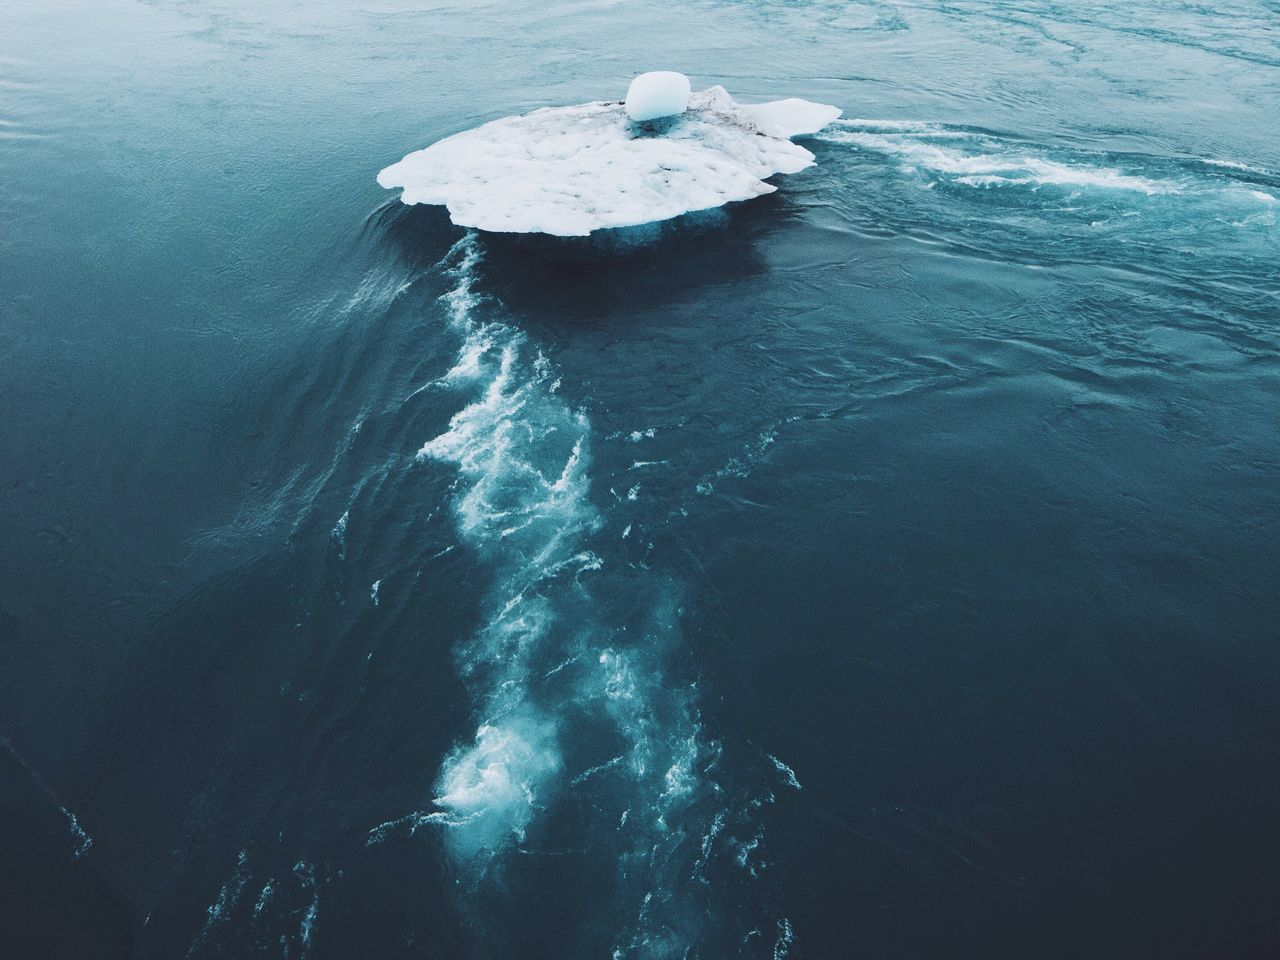 Water Nature Beauty In Nature No People Waterfront Tranquility Outdoors Tranquil Scene Scenics Sea Day Iceberg Iceland Simplicity Ocean Blue Ice Floating On Water Floating White Minimalism Landscape Nature